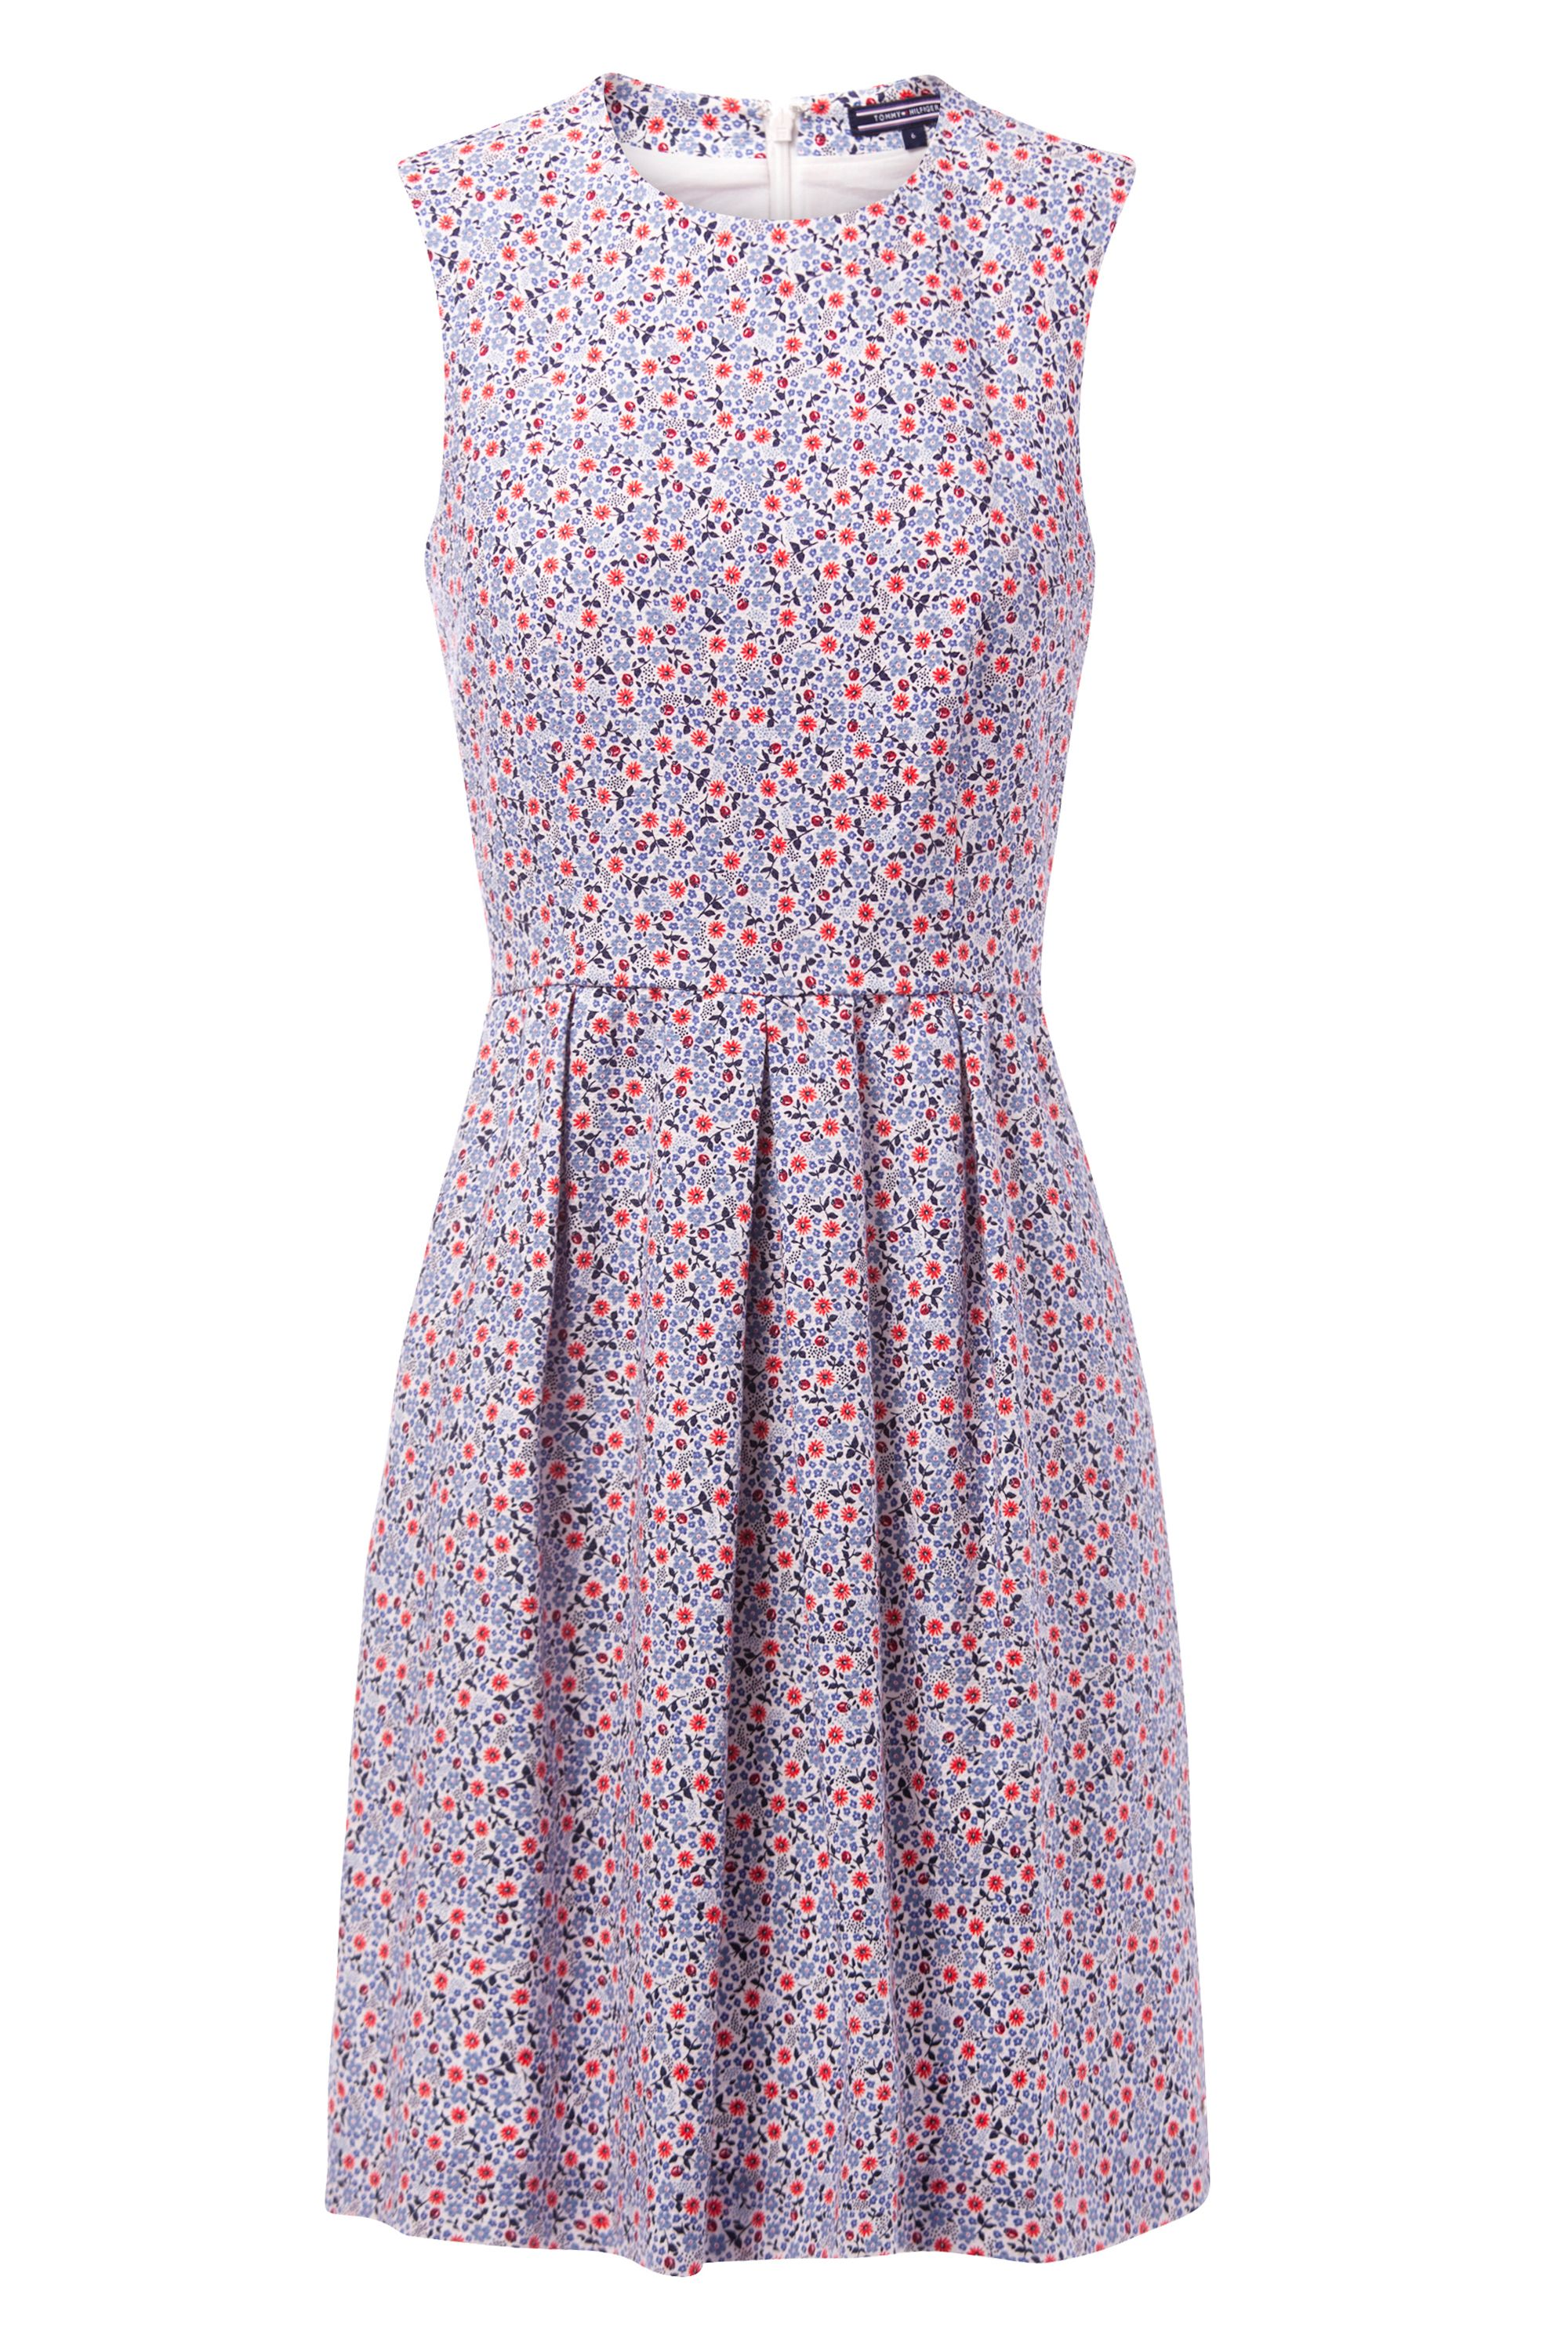 Tommy Hilfiger Taylor Dress, Blue